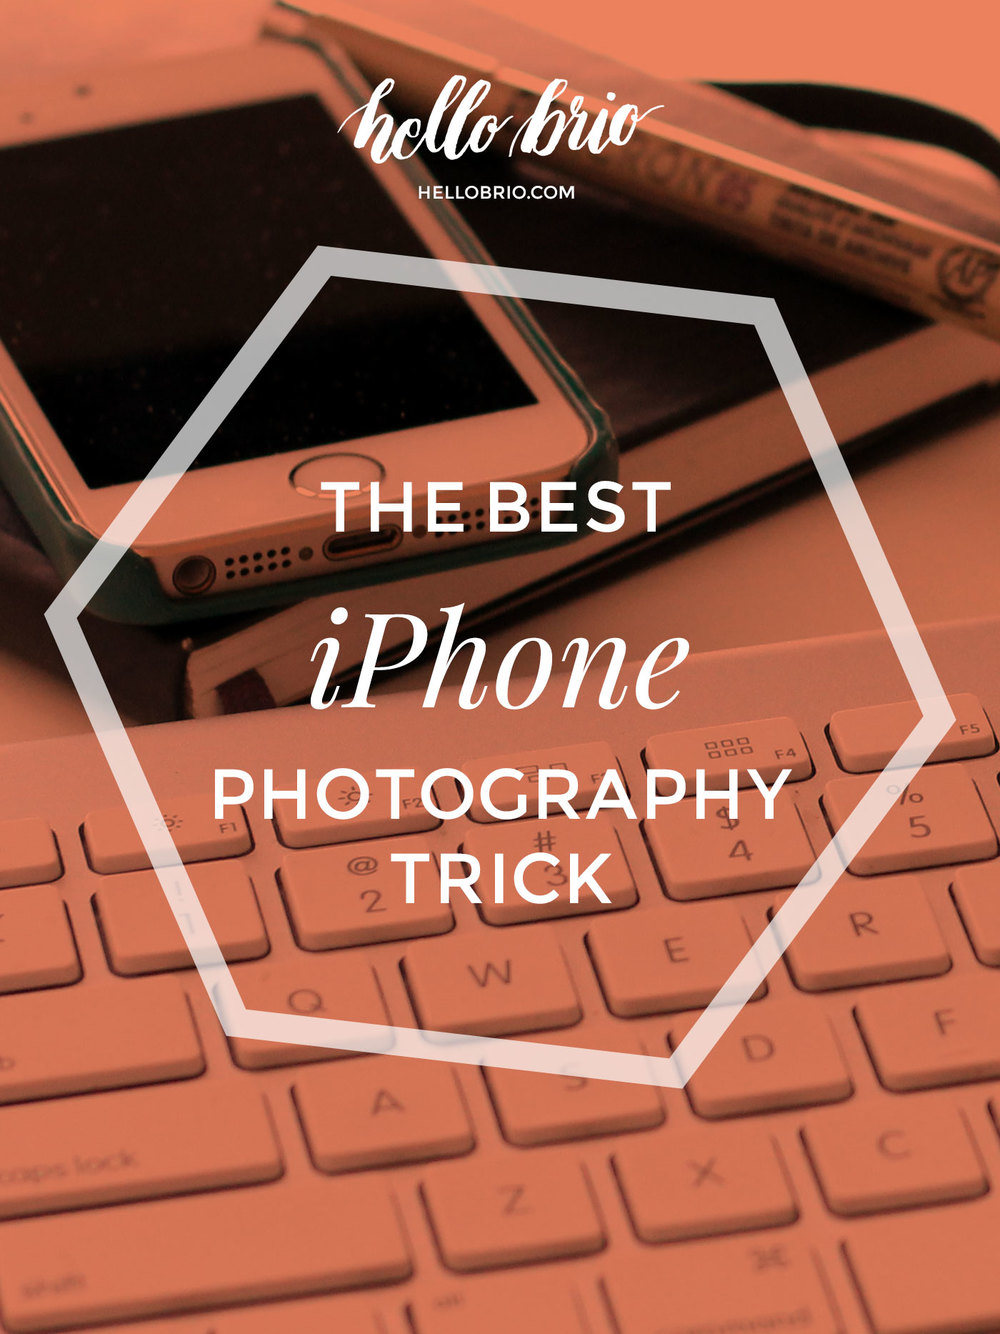 the single best iPhone photography trick